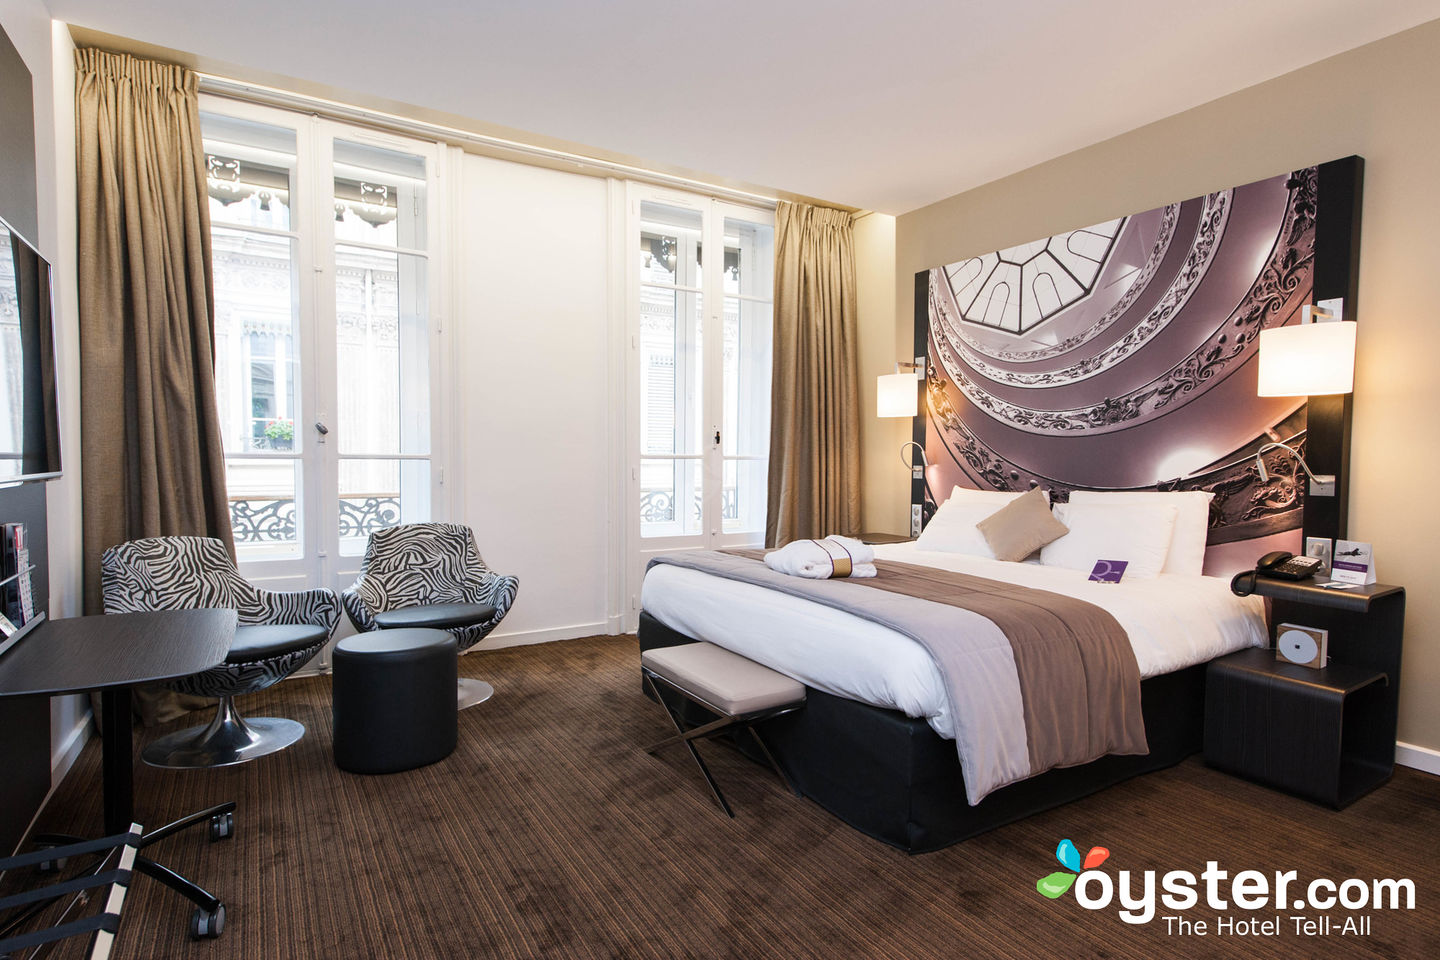 Hotel Mercure Paris Lyon mercure lyon centre beaux arts review: what to really expect